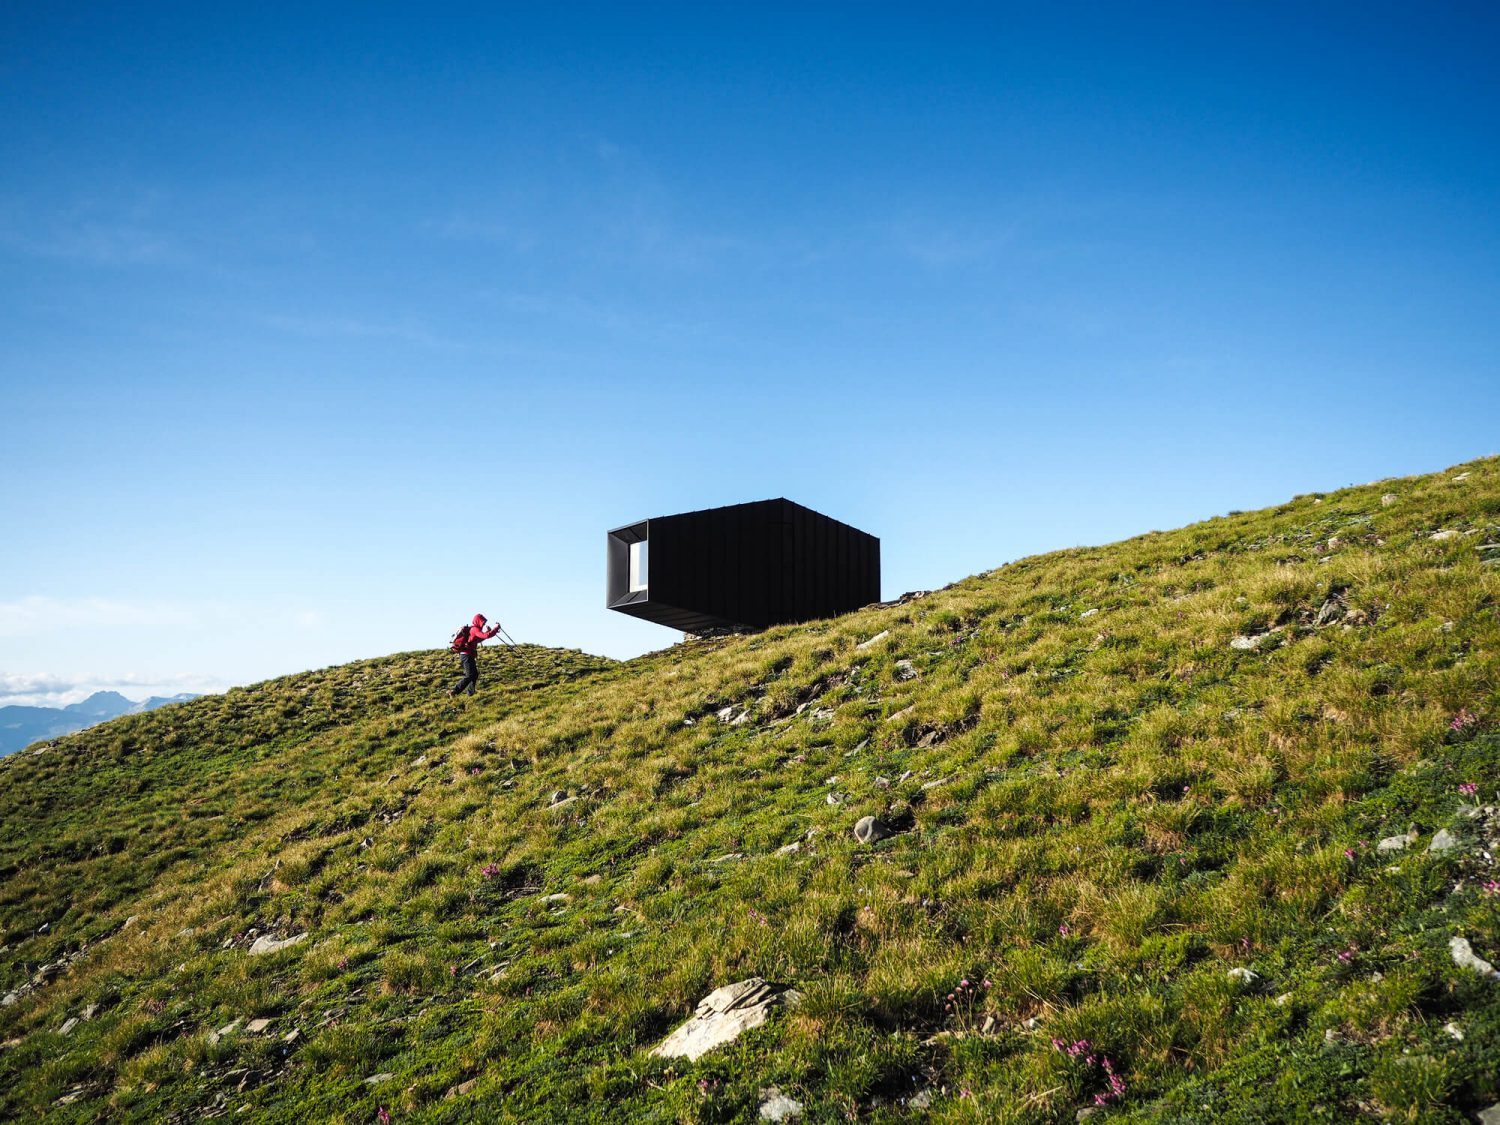 Black Body Mountain Shelter by Michele Versaci